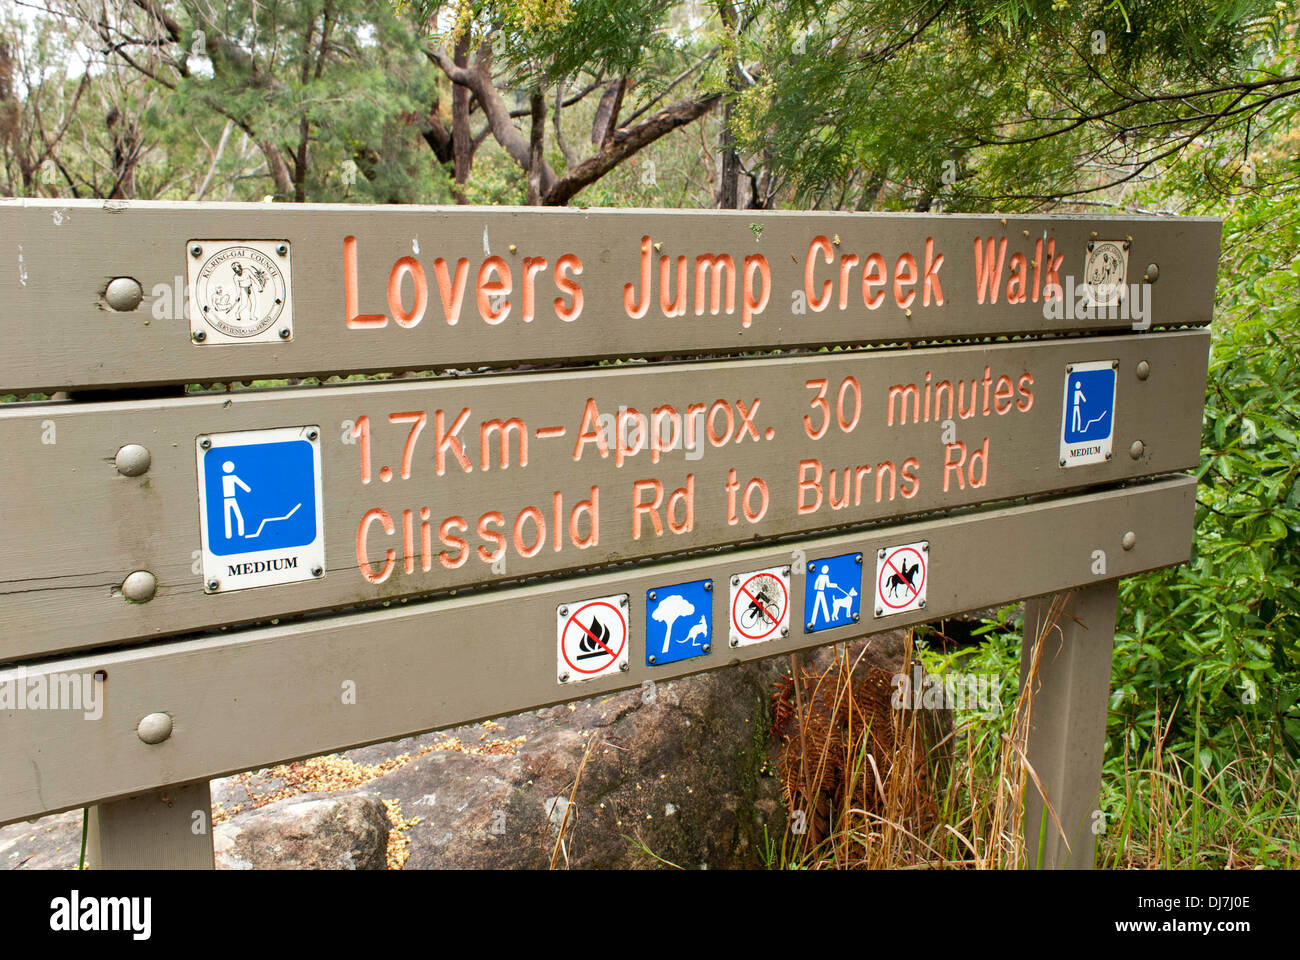 Bush walk signage at Lovers Jump Creek Walk, Sydney, Australia - Stock Image